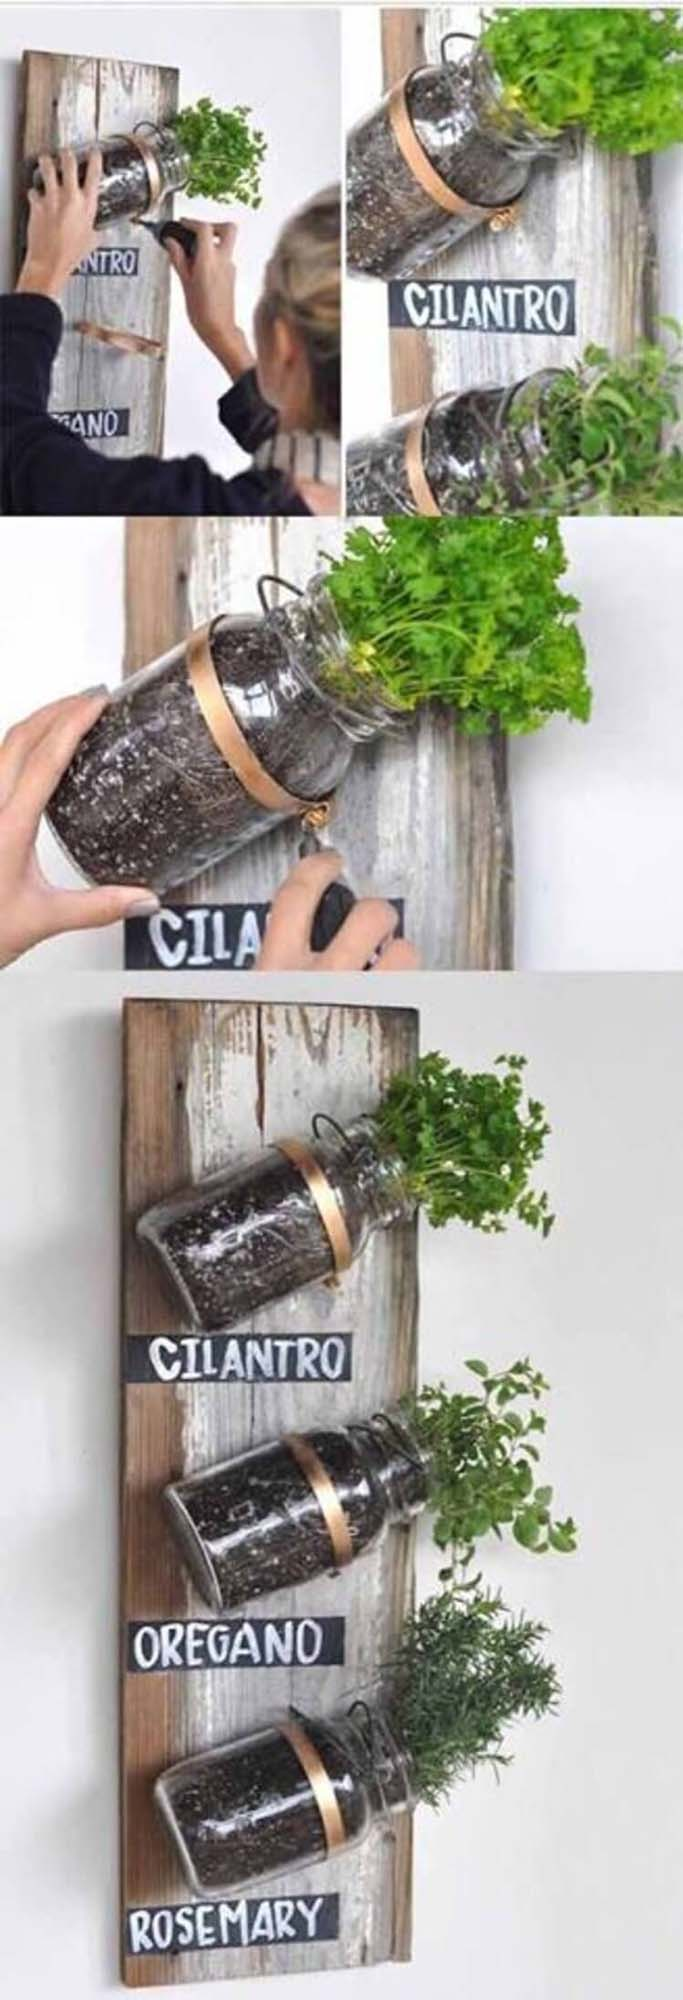 Mounted Mason Jars on Wood Panel Herb Garden #diy #herbgarden #herbs #garden #ideas #decorhomeideas